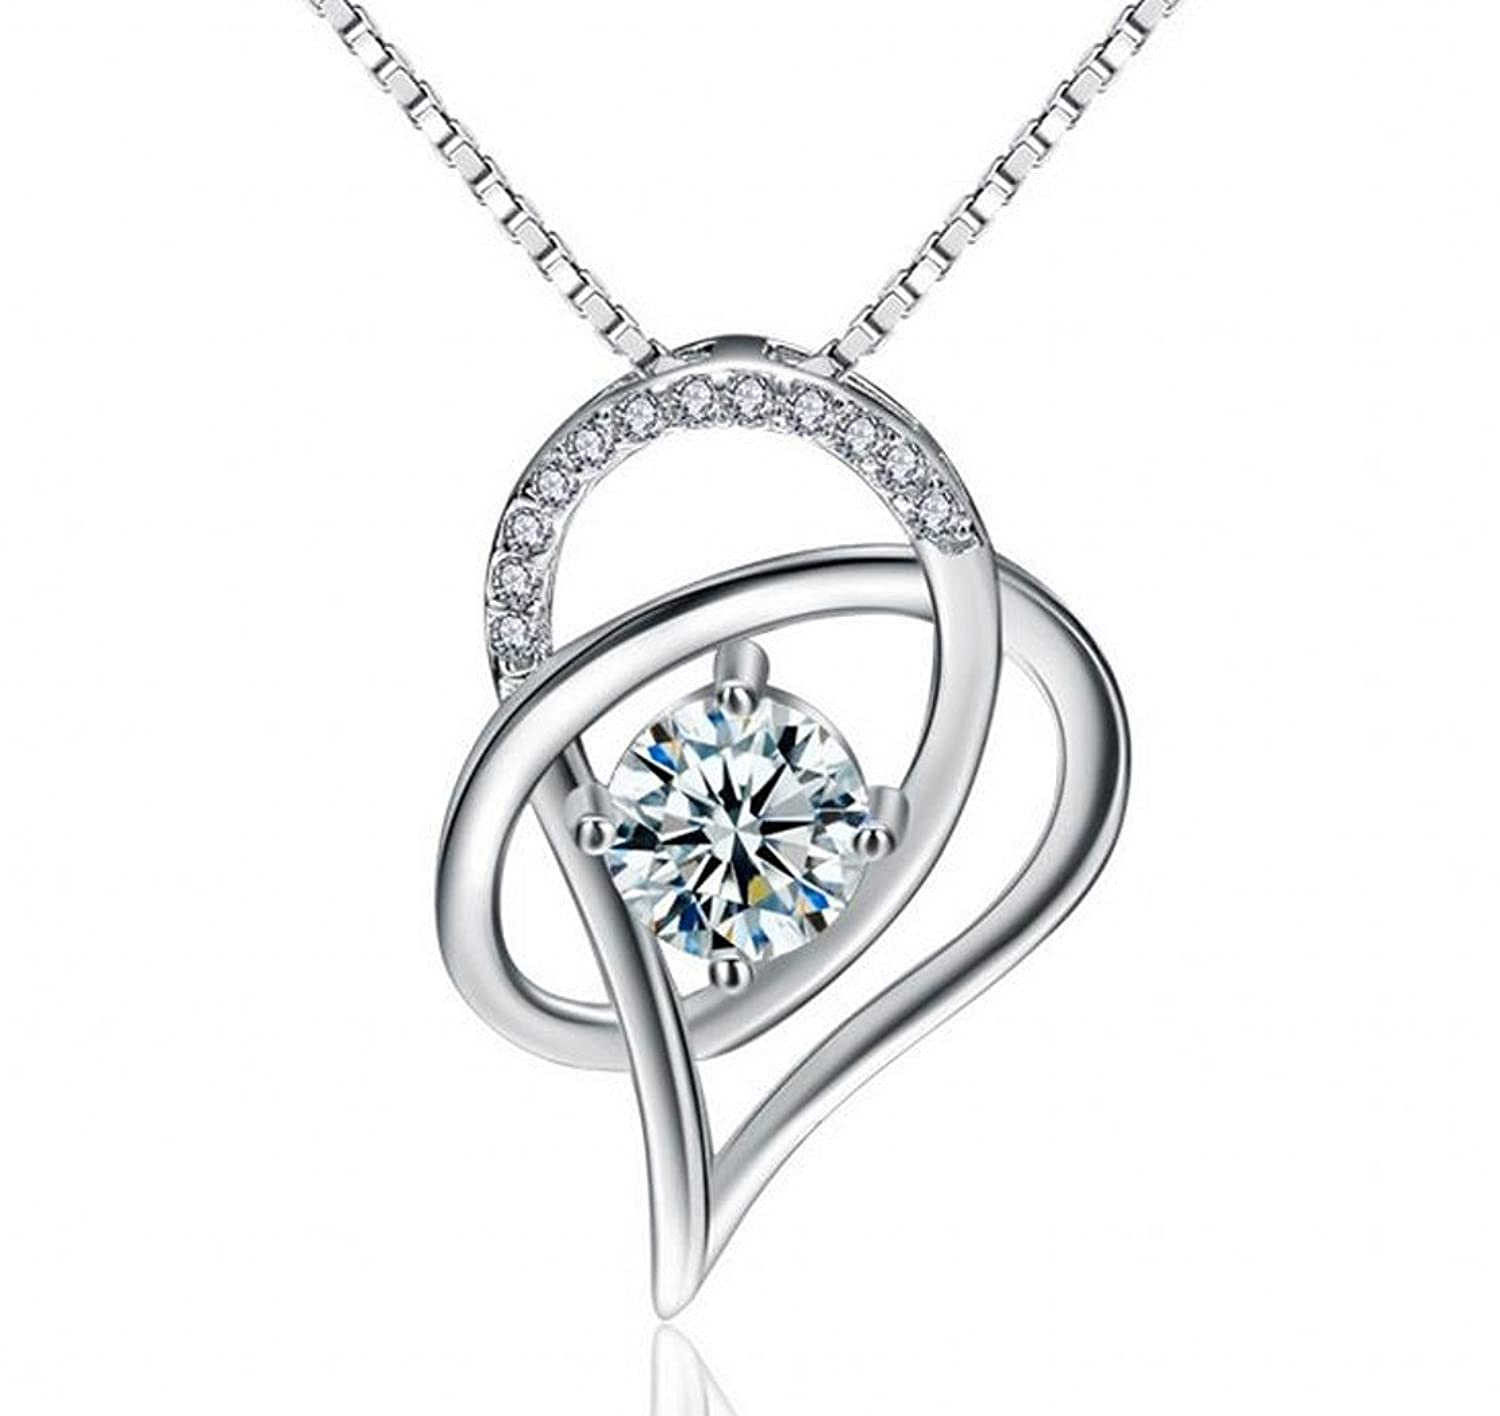 Silver Forever 925 Sterling Silver Pendant Without Chian